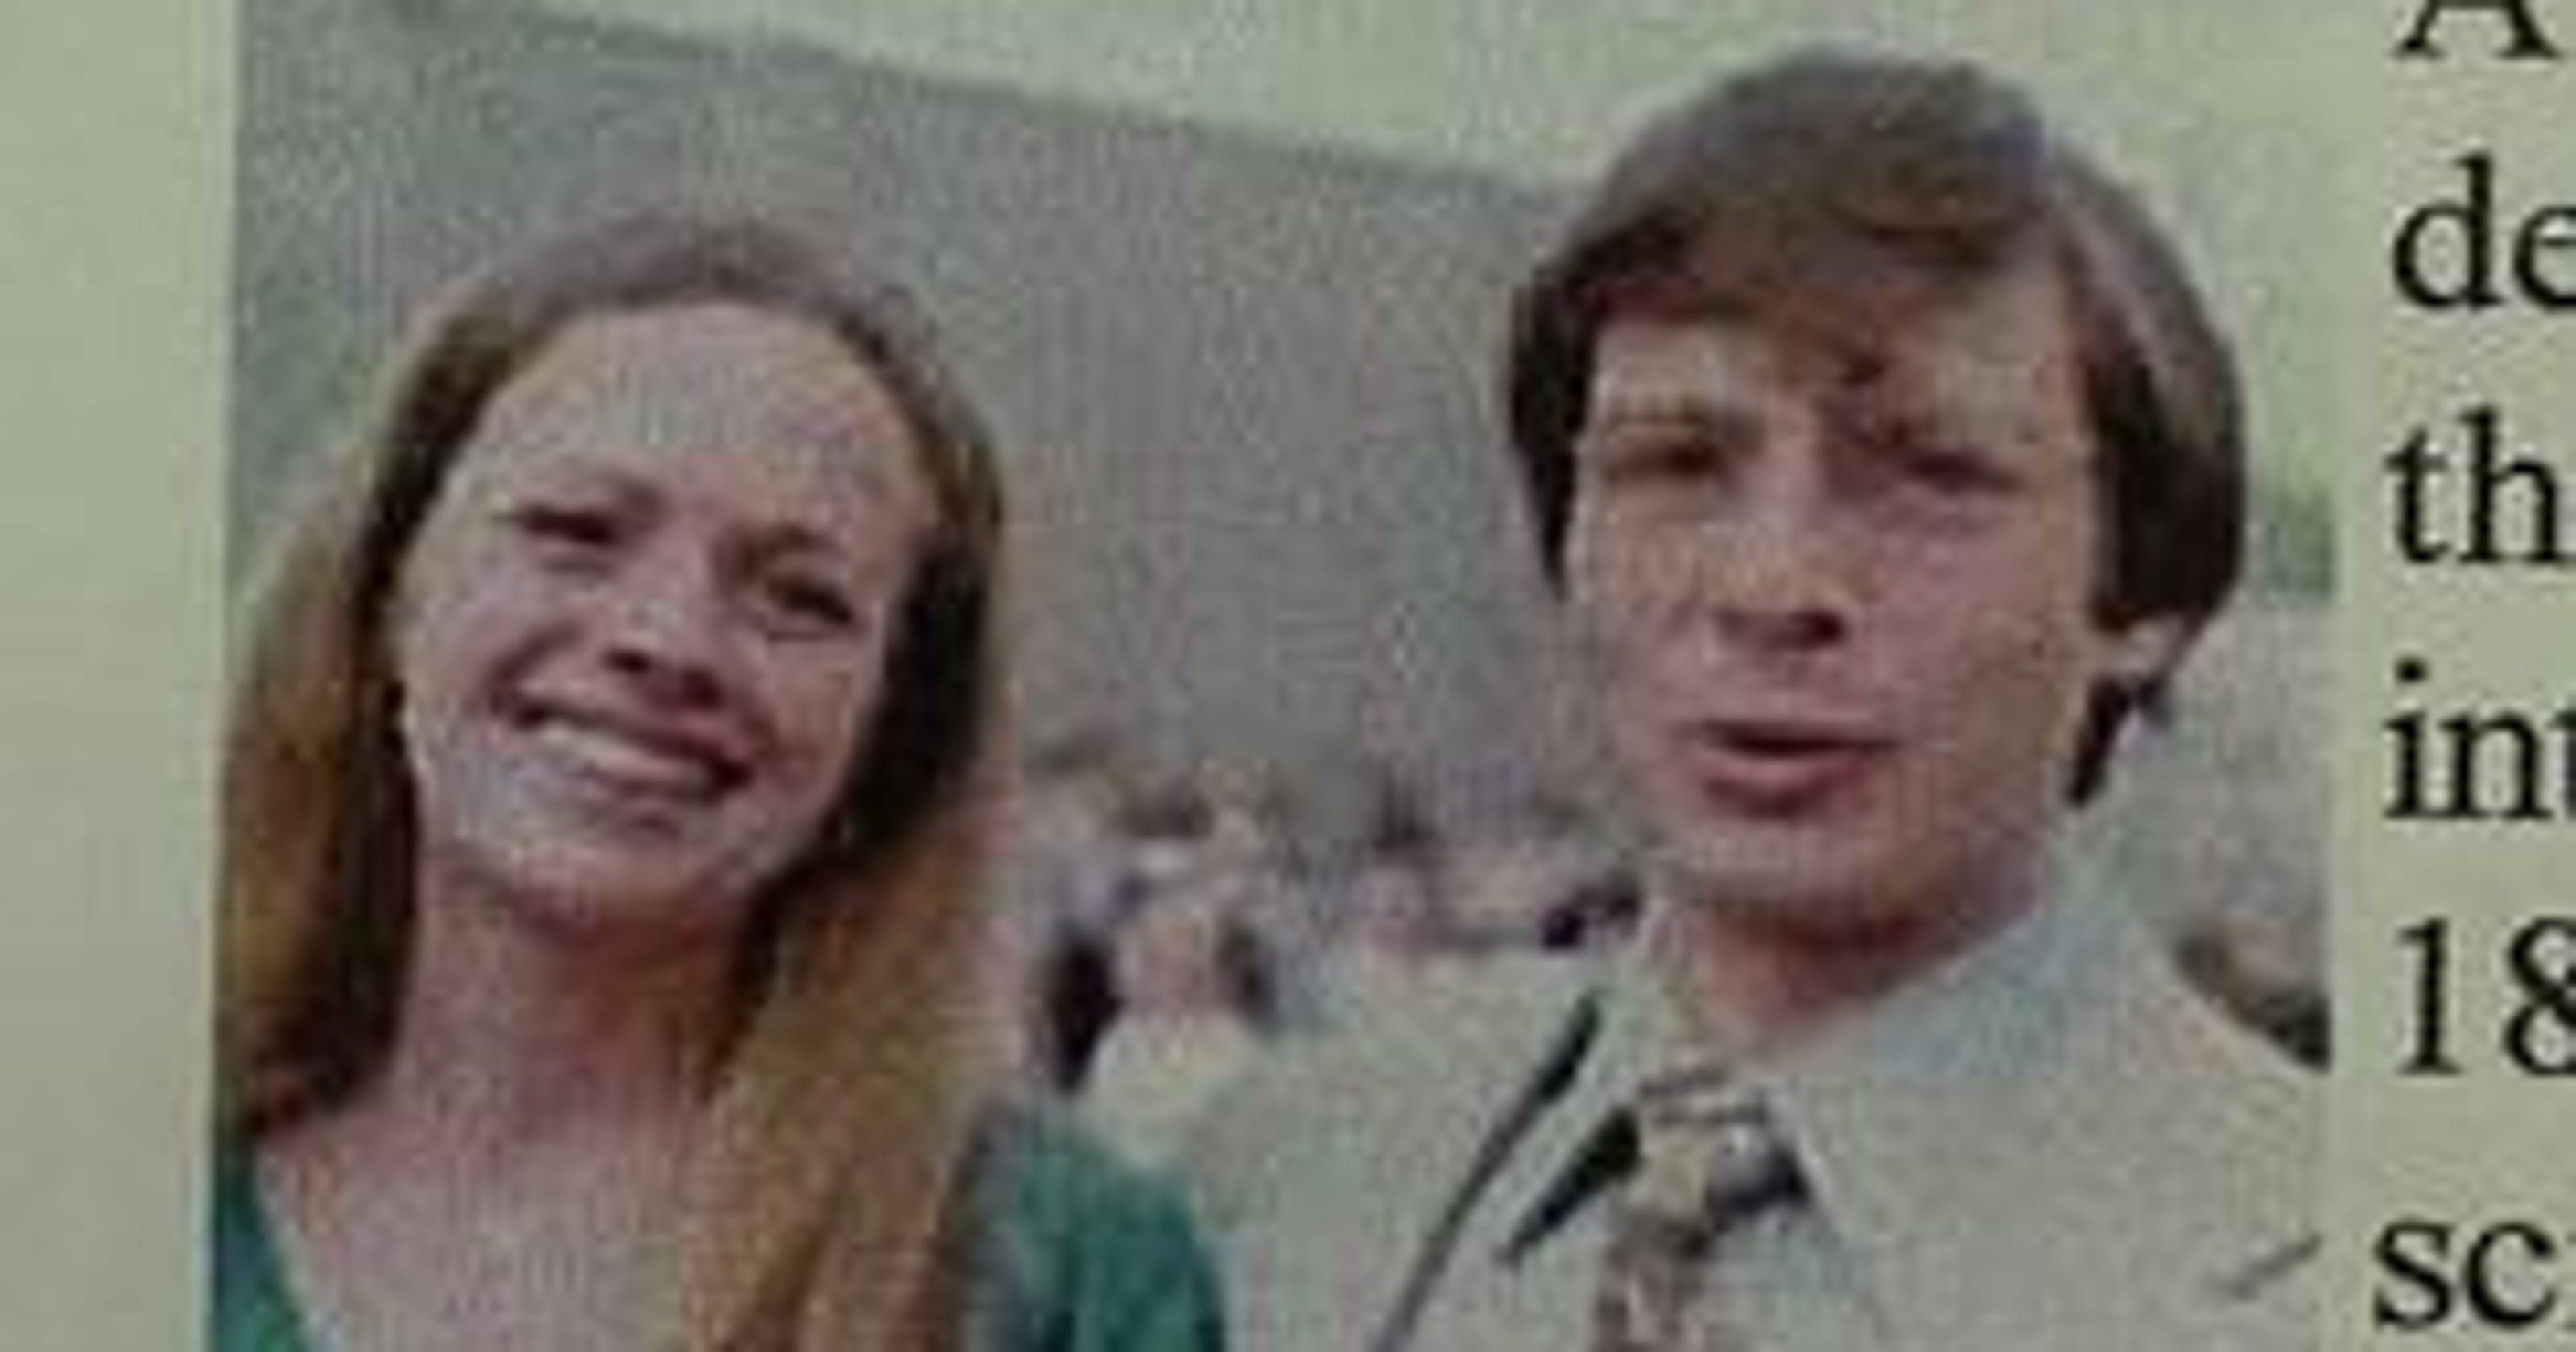 Robert Durst's wife Kathie Durst still missing after 33 years